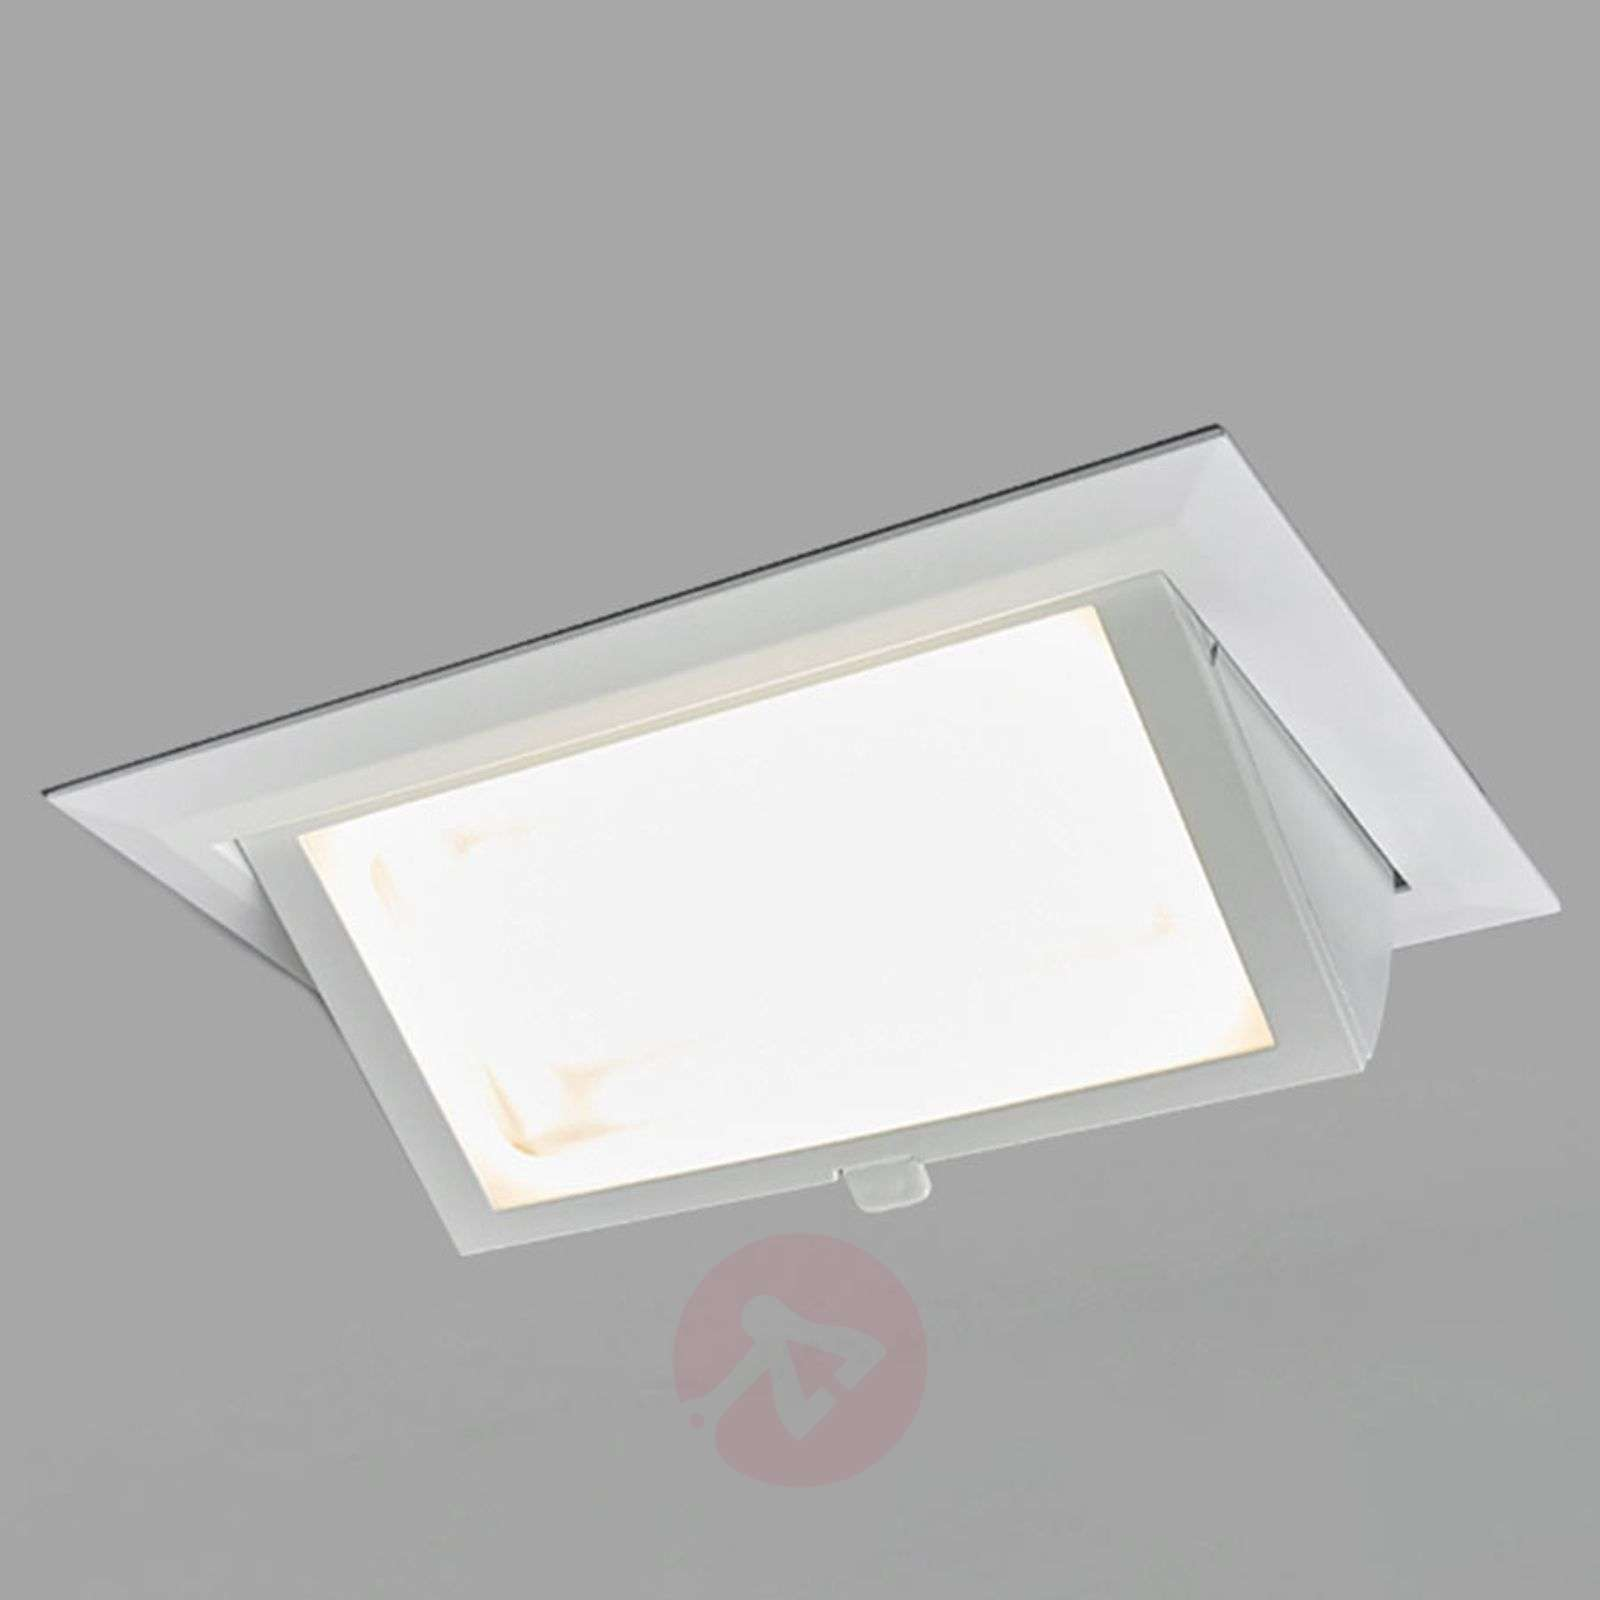 Hoekige LED downlight Adnan-9966027-04